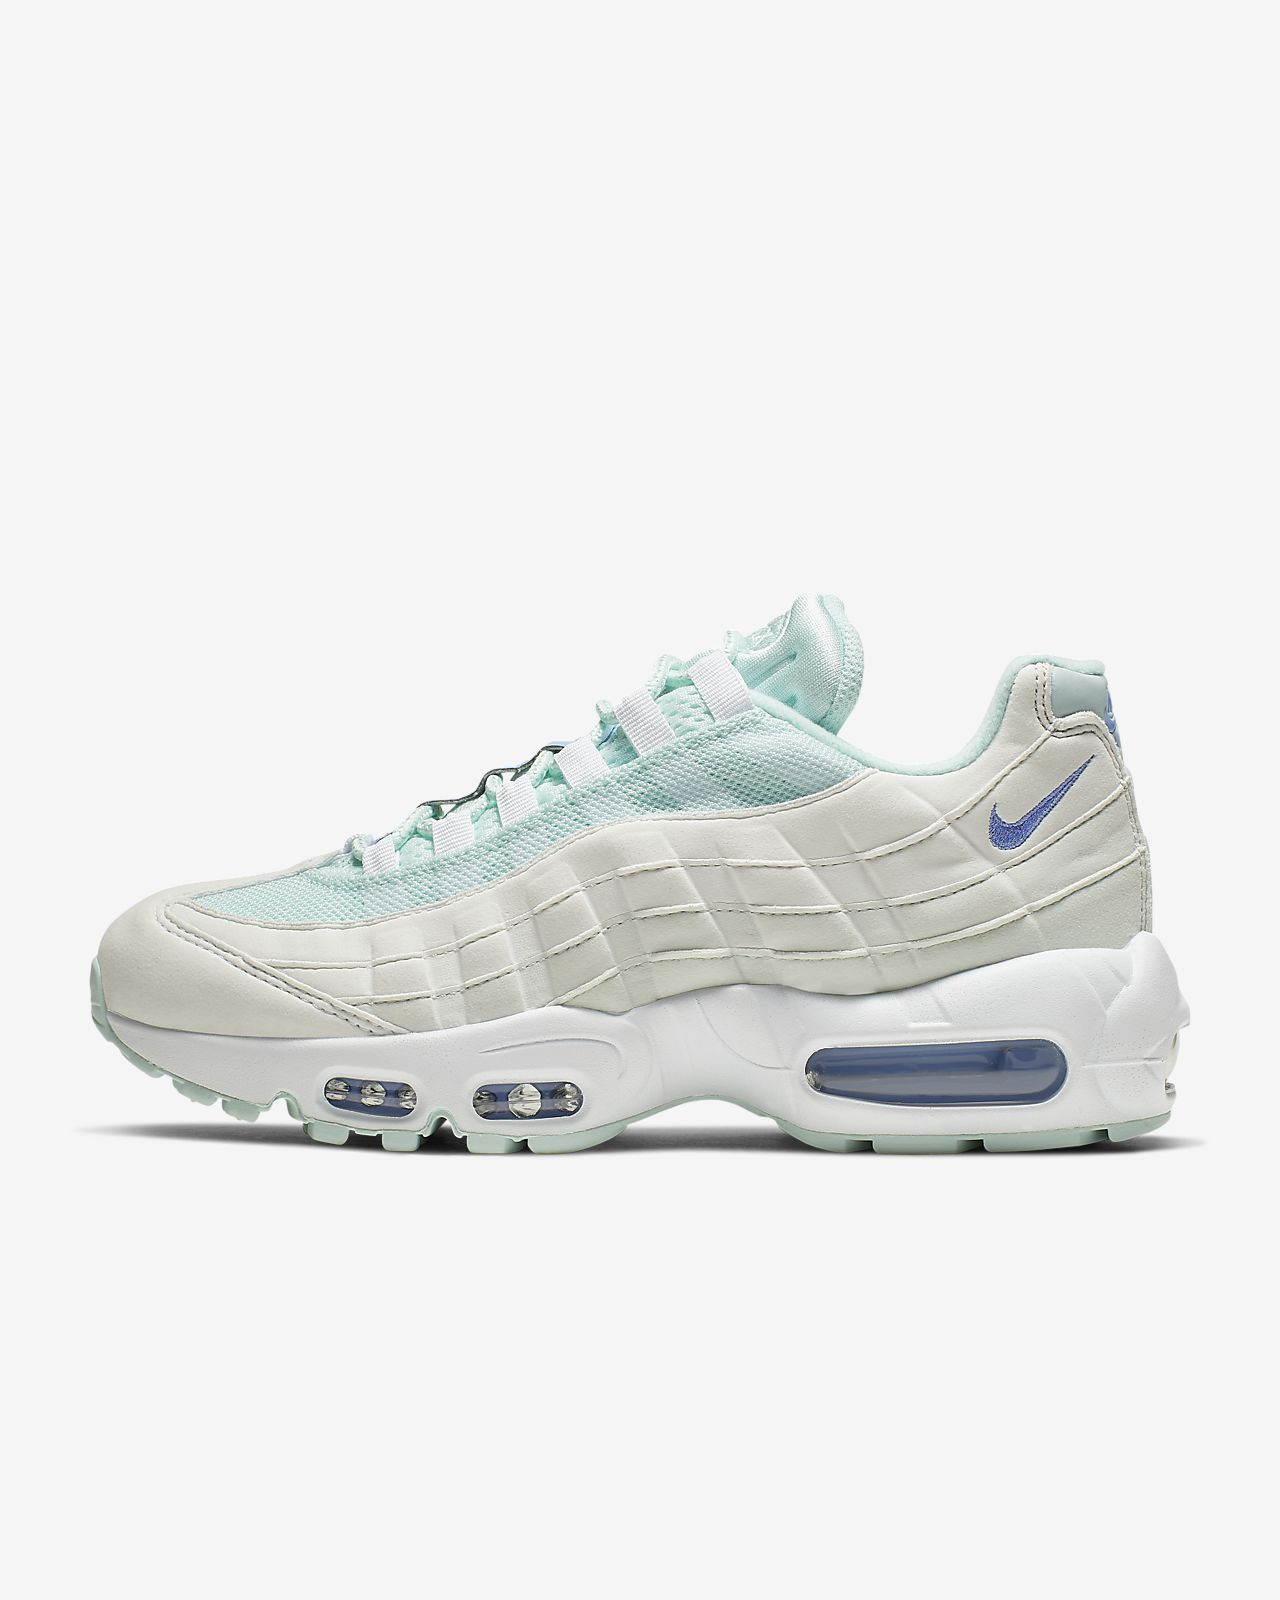 official photos dddfd 0eca7 ... Nike Air Max 95 Women s Shoe